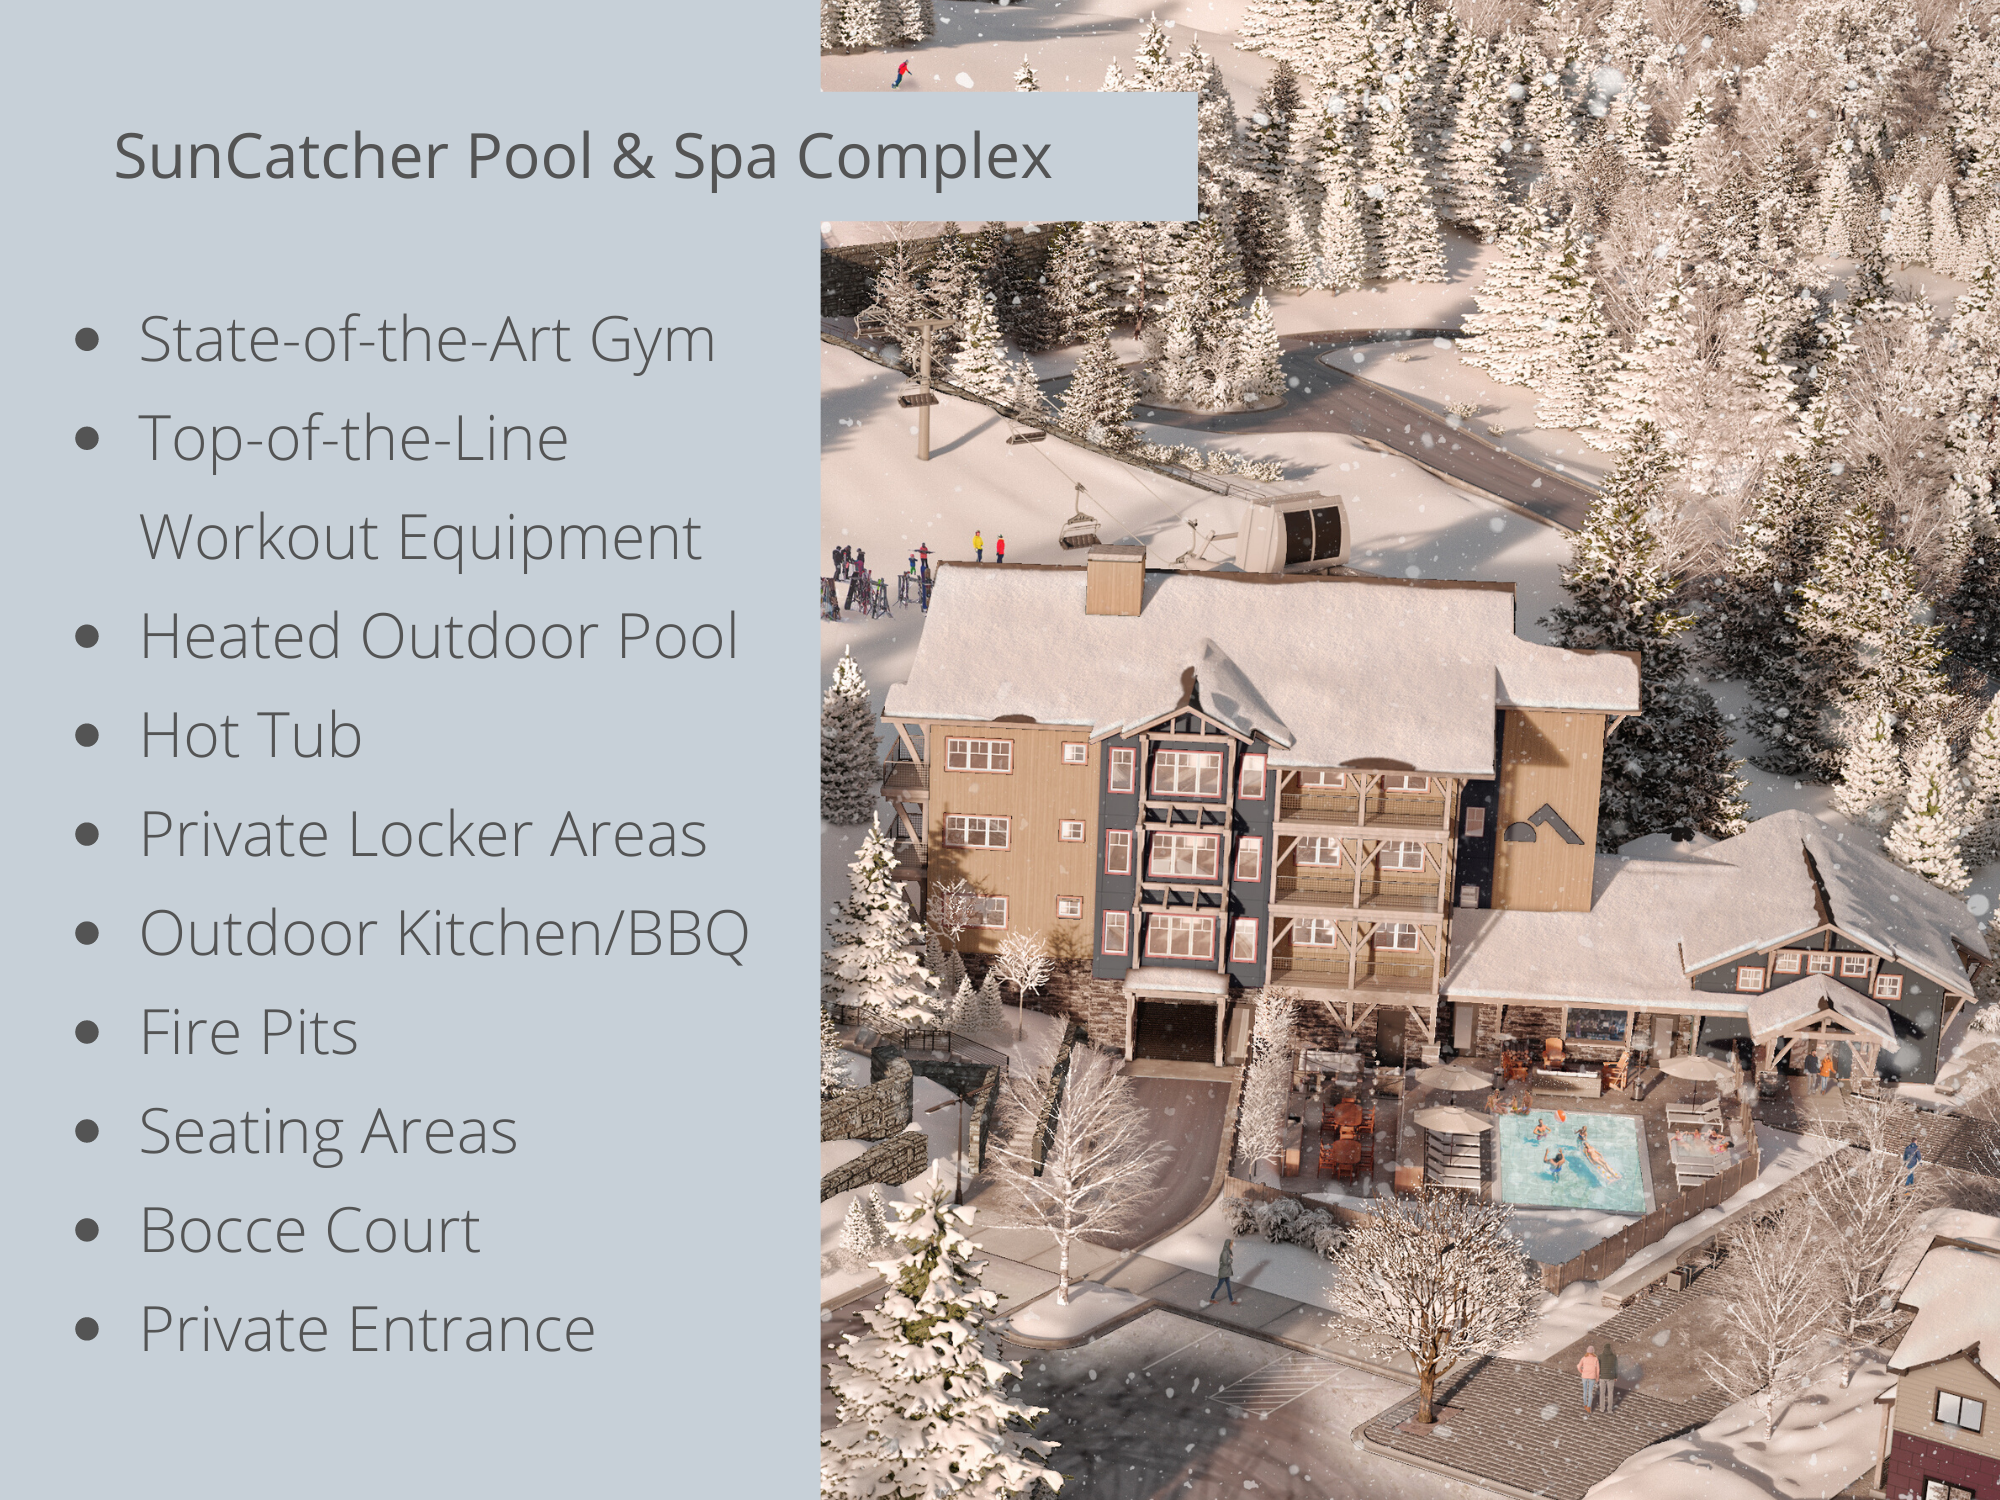 SunCatcher Villa and Health Spa/Pool Complex